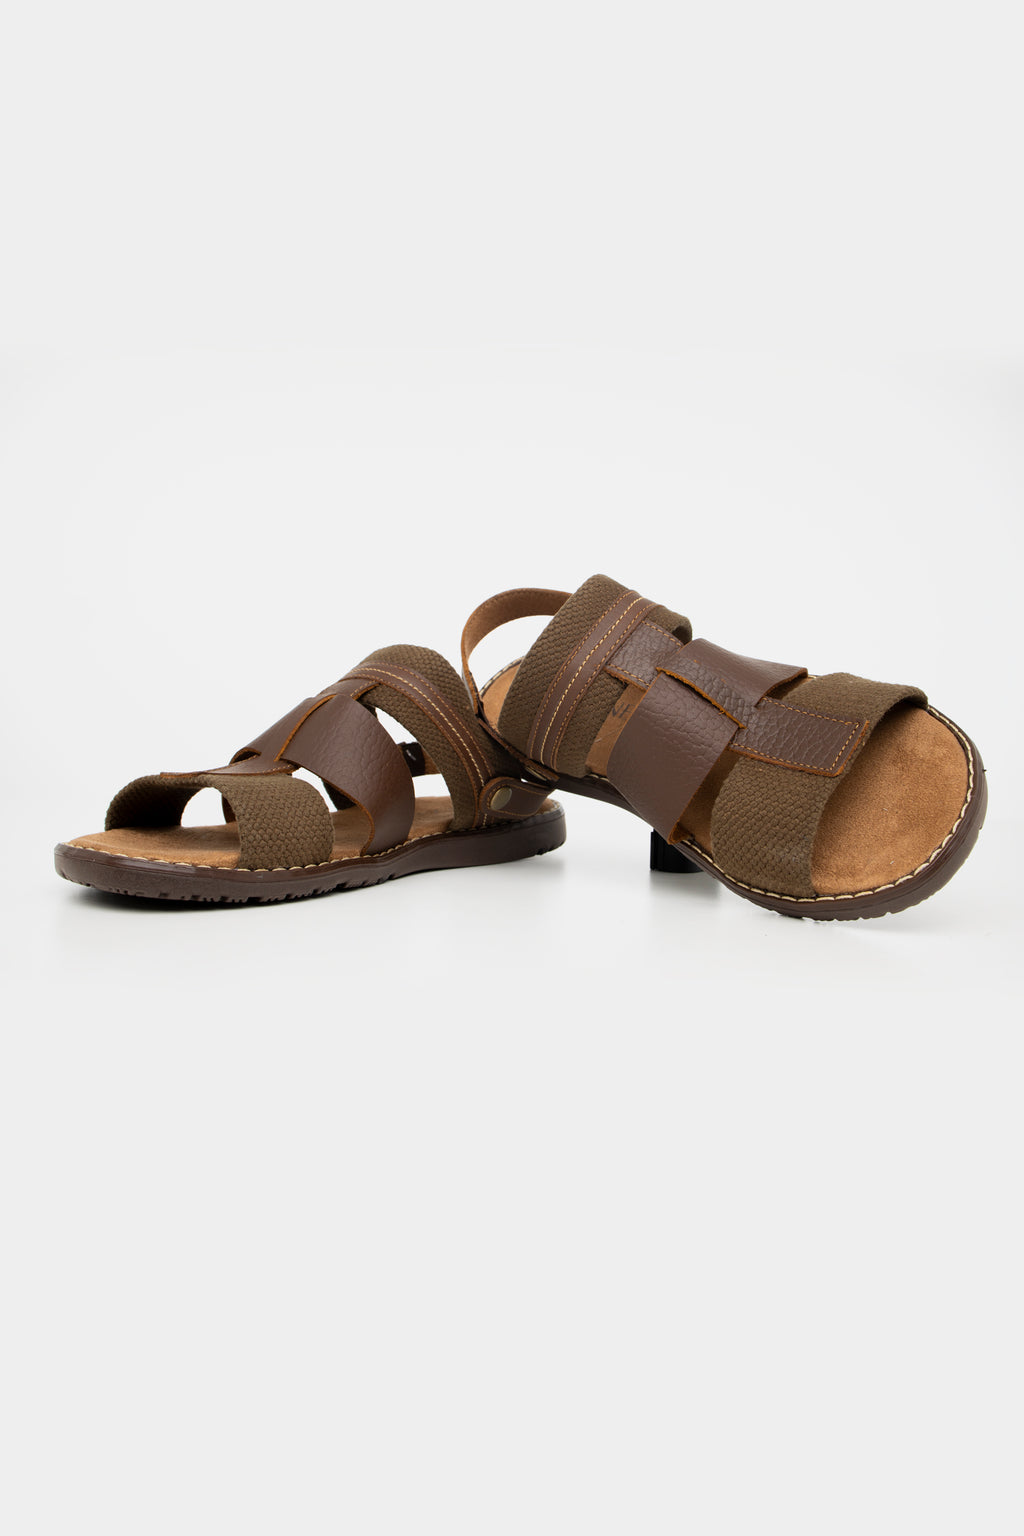 Boronea Sandals Brown - Boronea